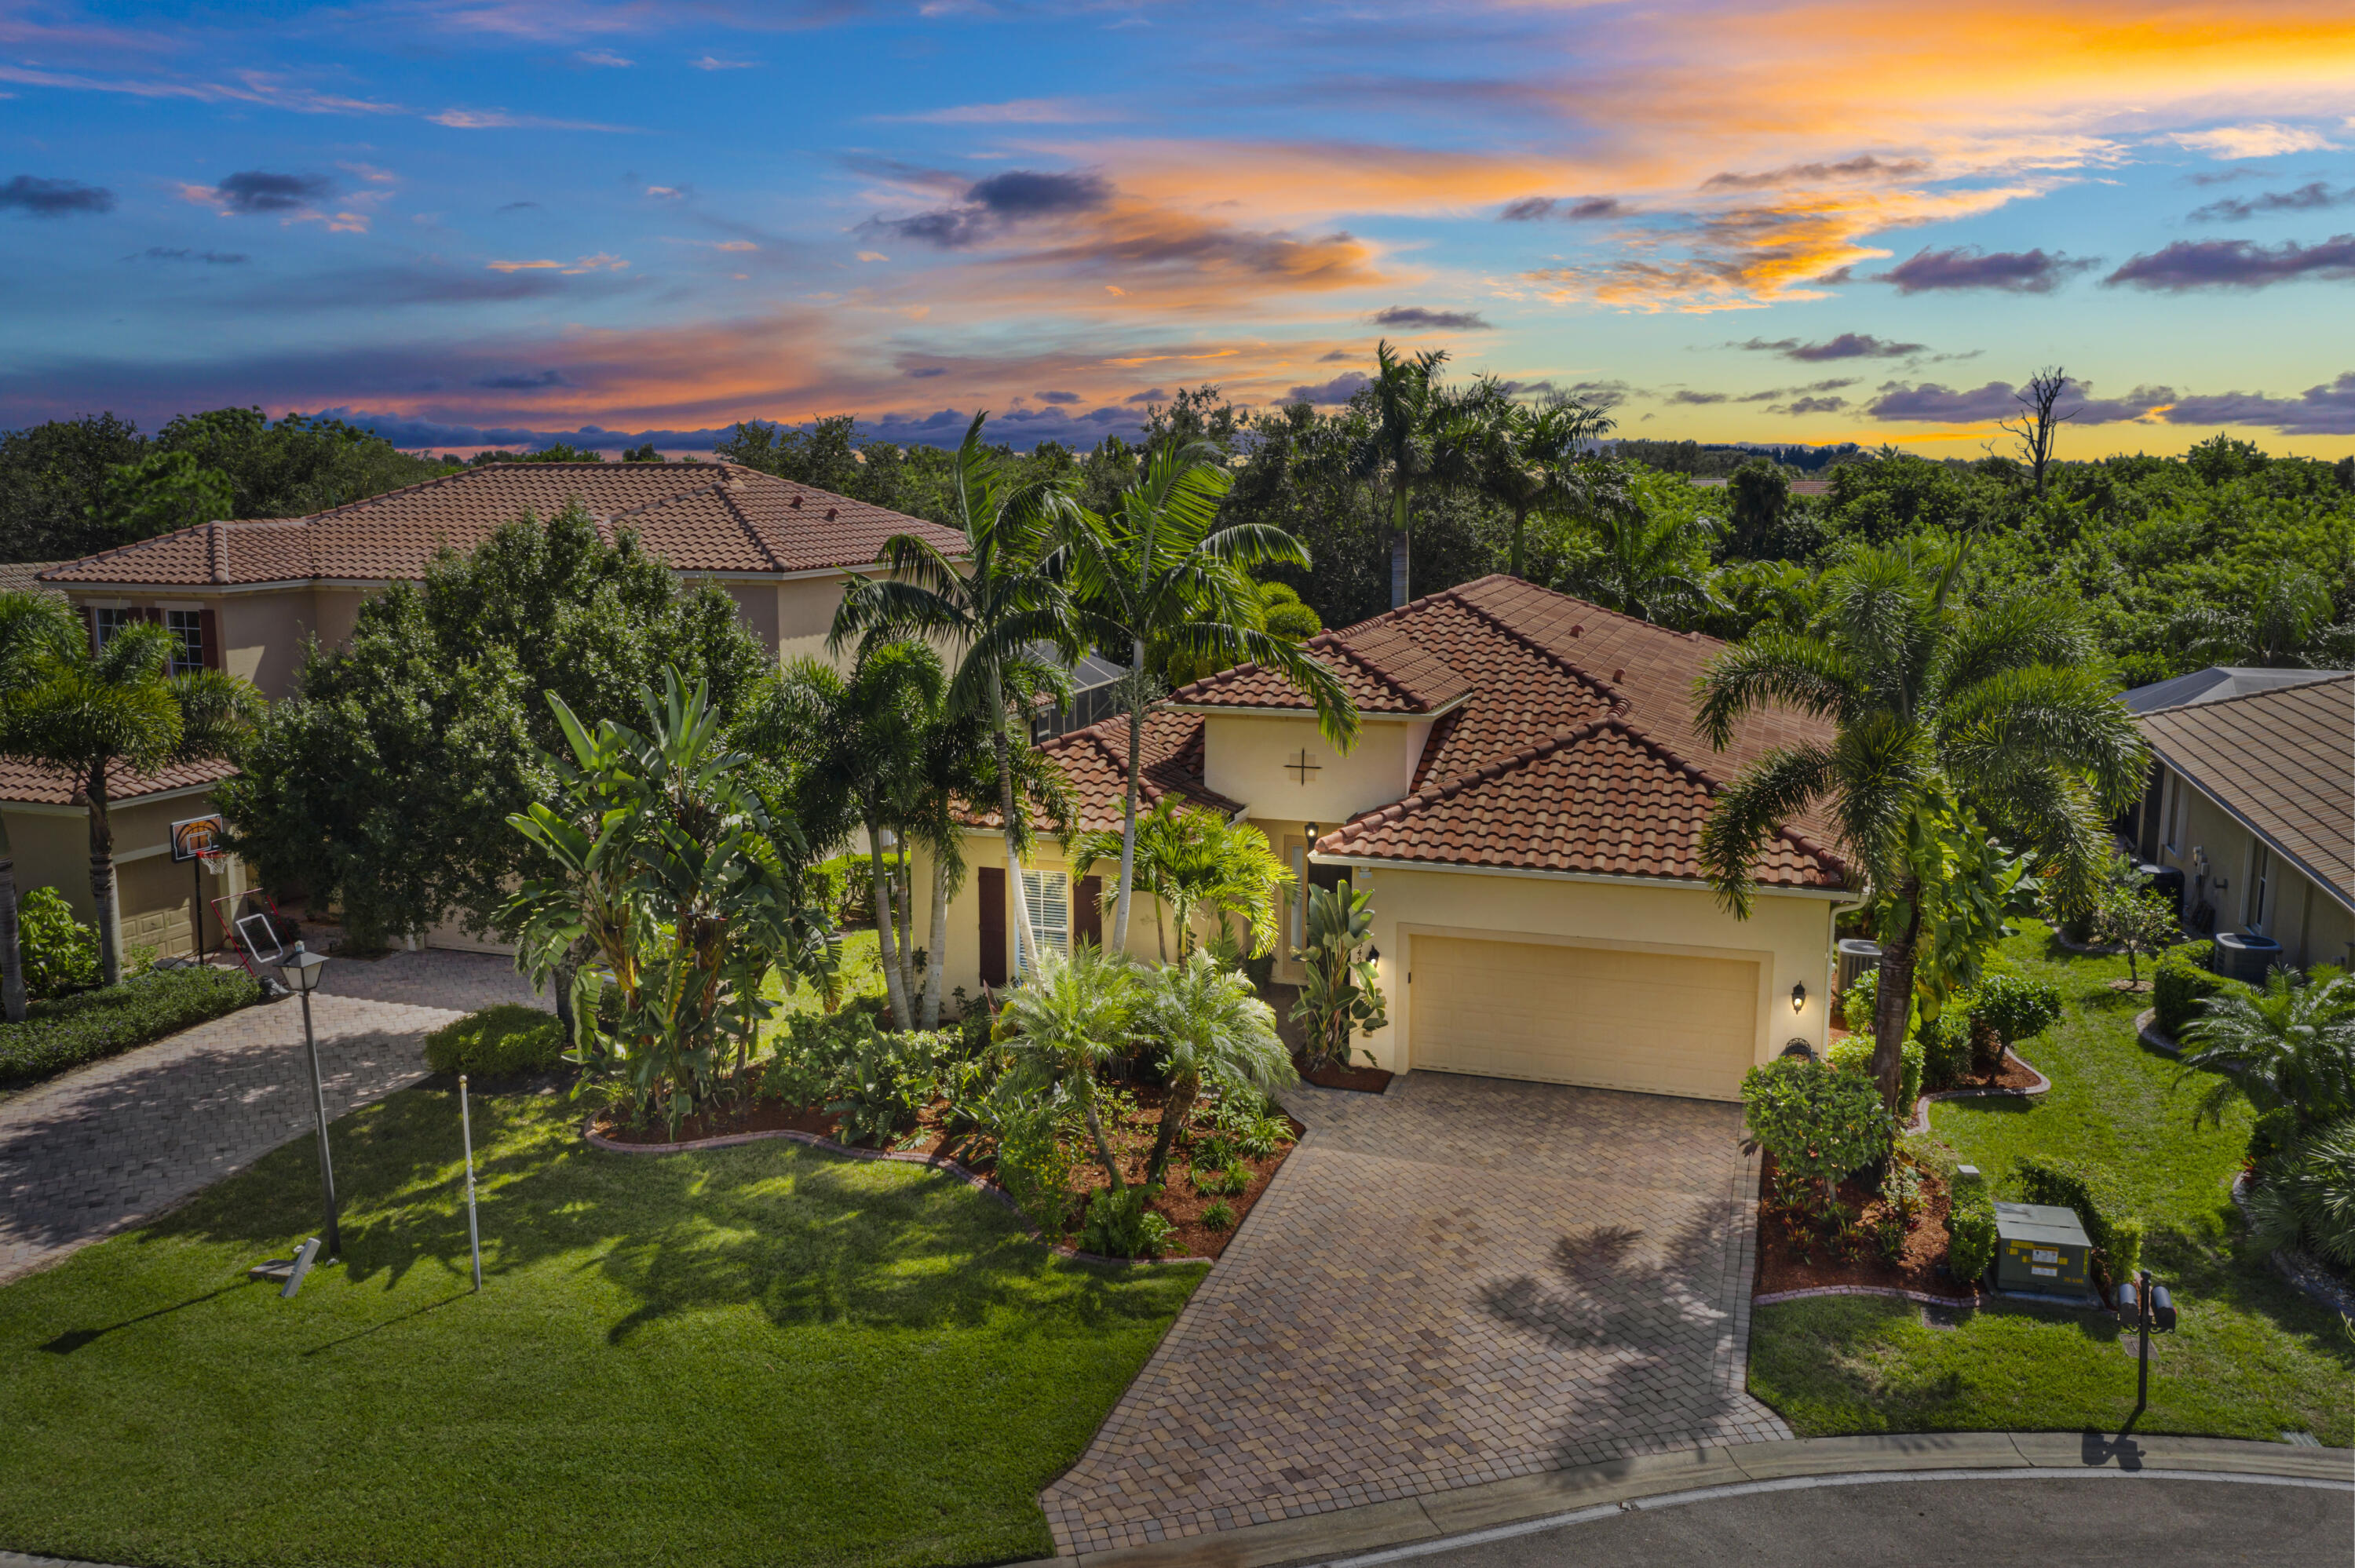 Gorgeous 4 bedrooms, 3 bath home featuring crown molding, granite kitchen with stainless appliances. 2 car garage and private salt water swimming pool. Rm sizes are approx.